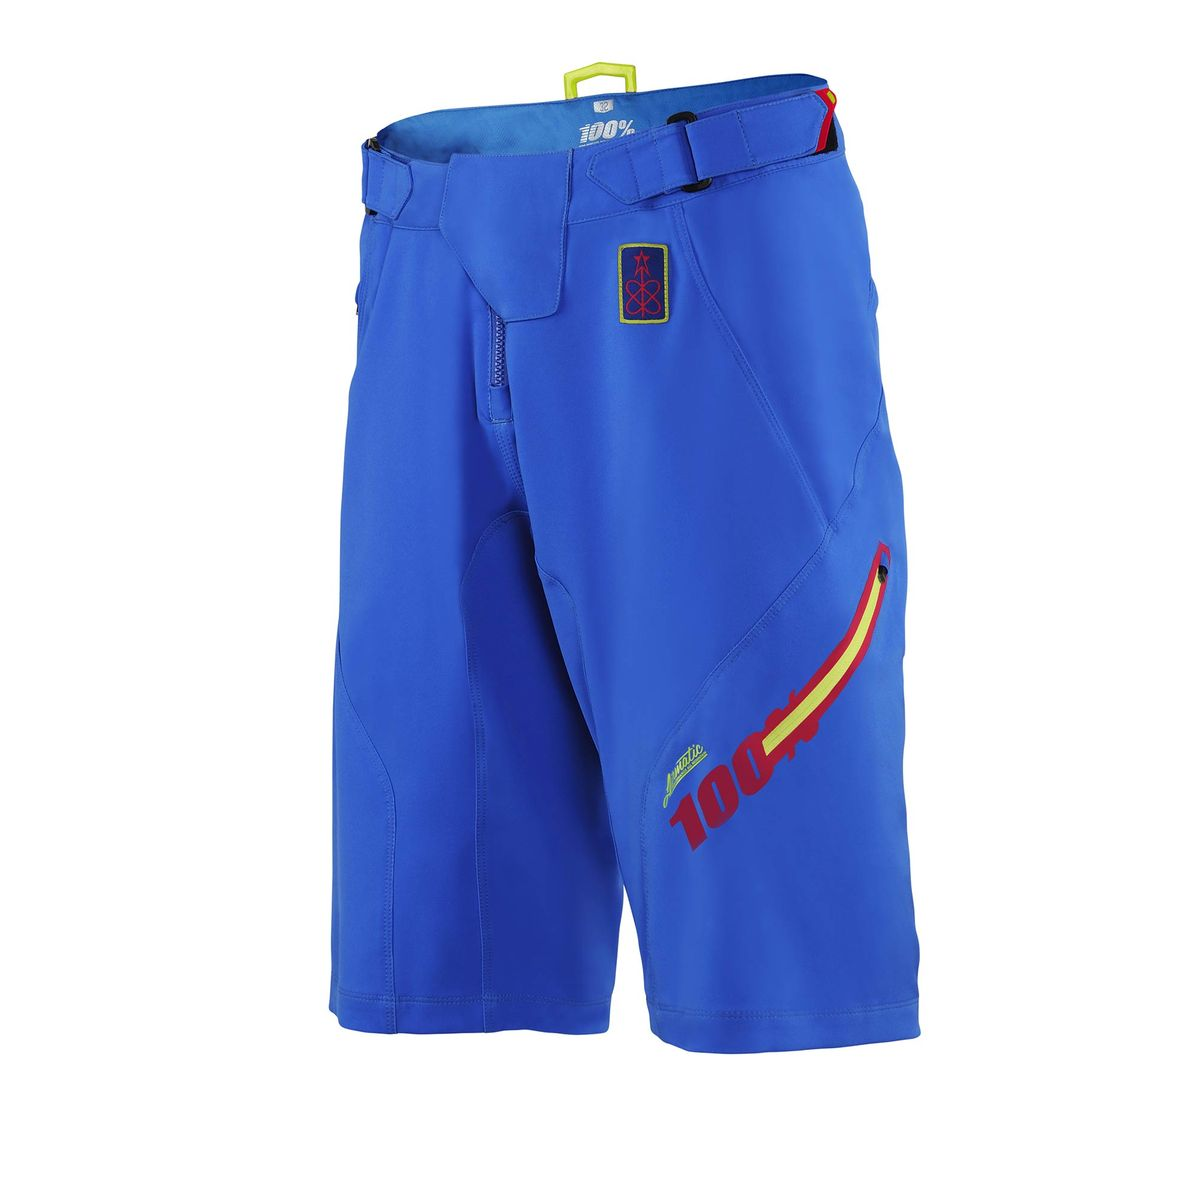 AIRMATIC FAST TIMES Bikeshorts